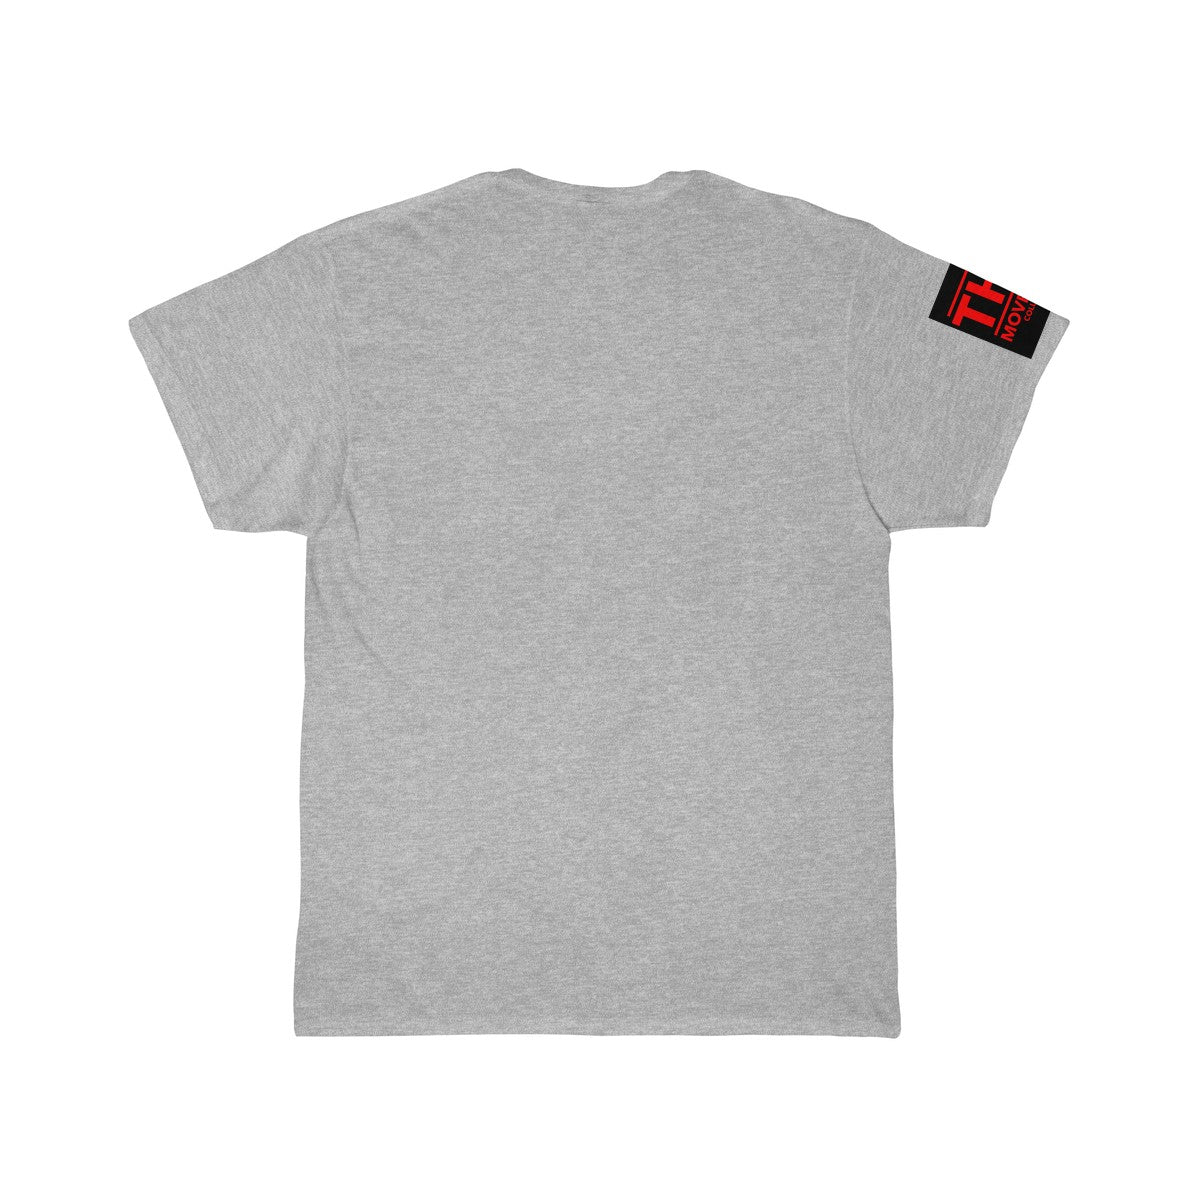 LWD Unisex Short Sleeve Tee MOVEMENT COLLECTION Ladies